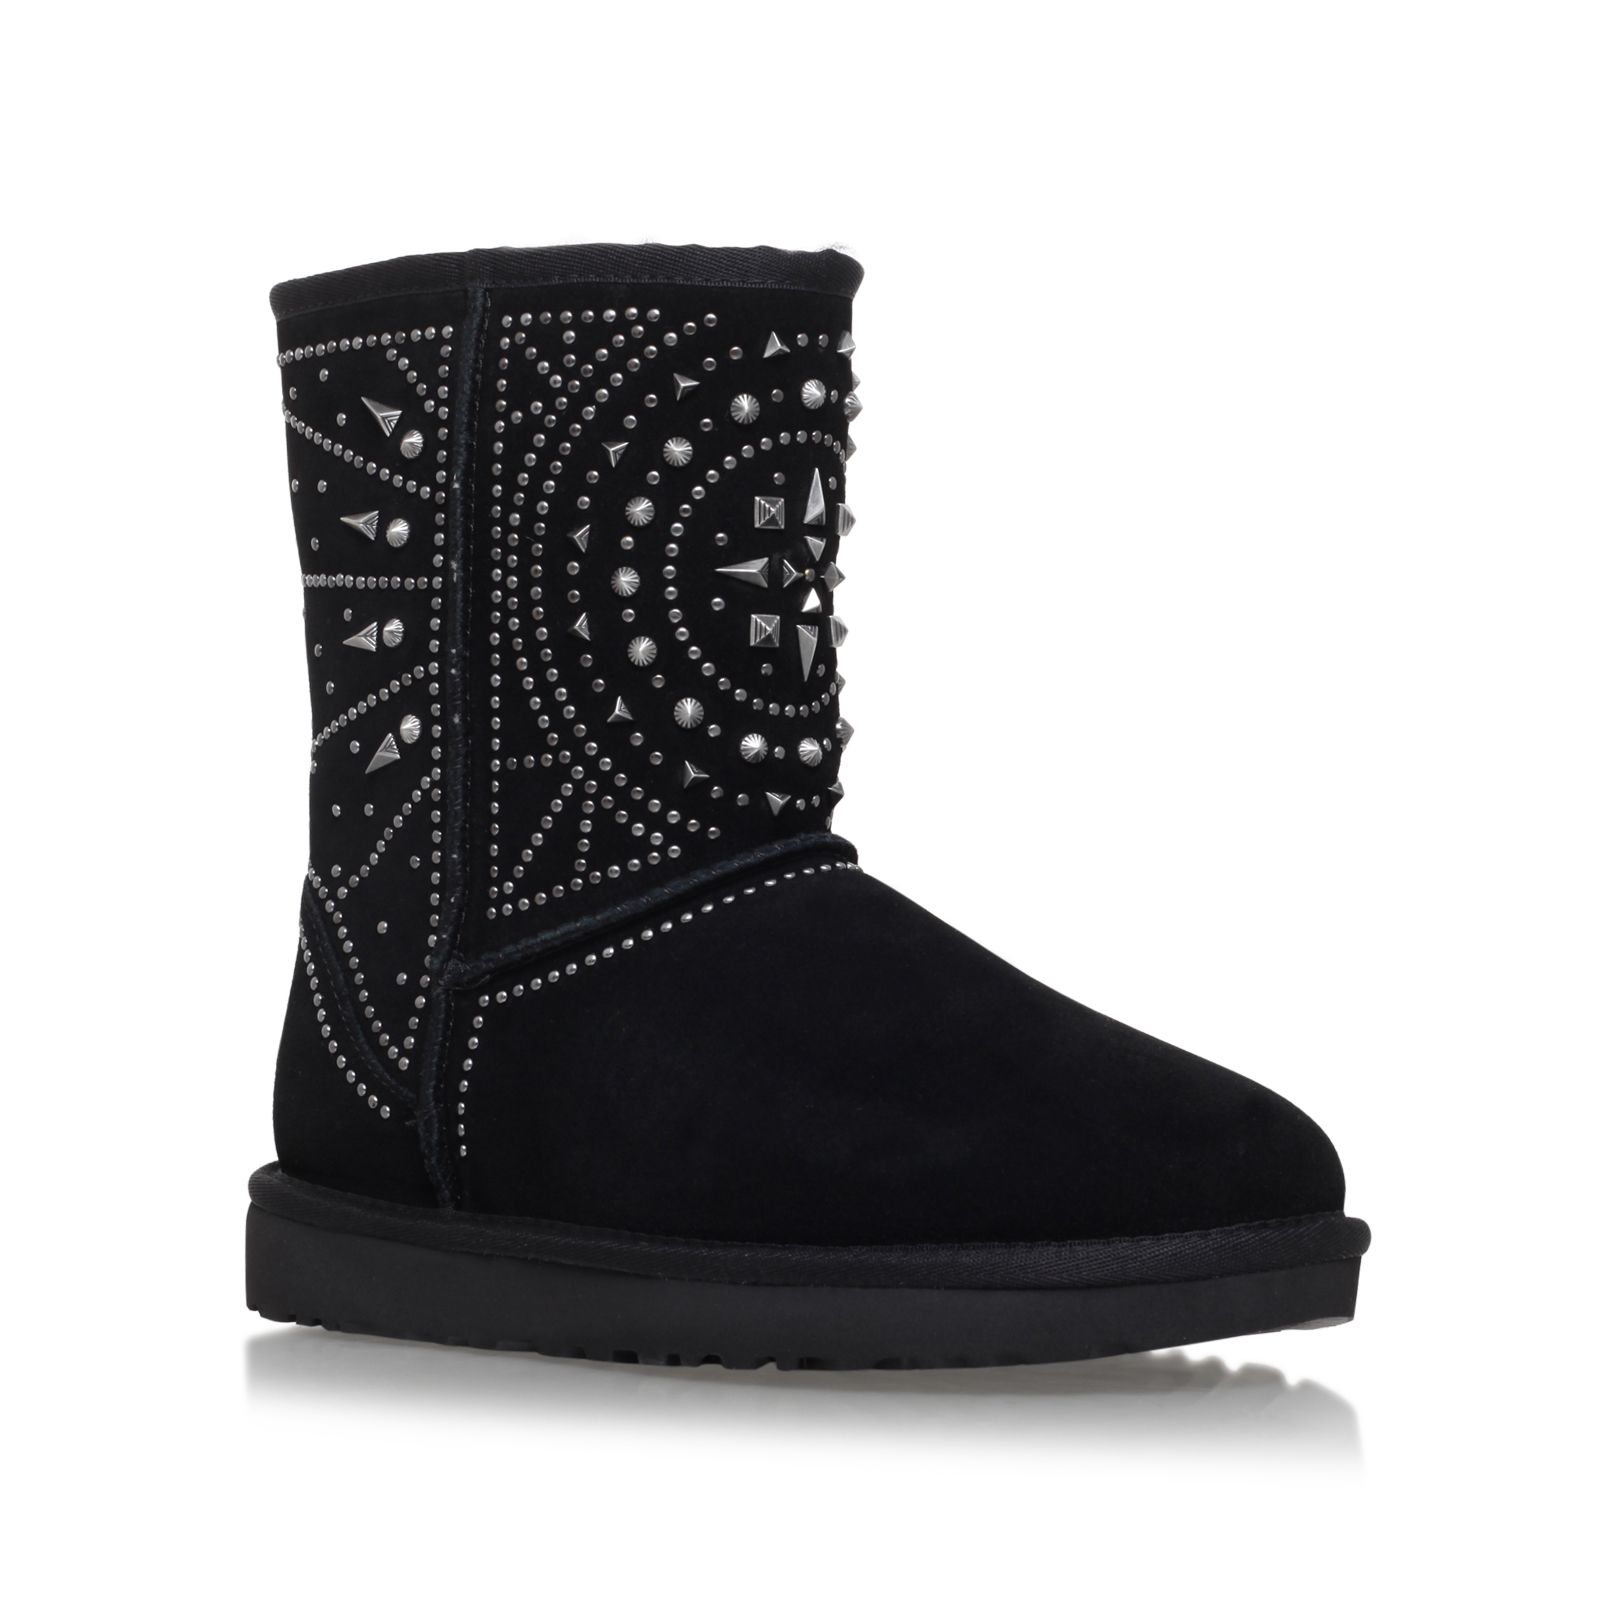 UGG Fiore deco studs flat fur lined boots Black